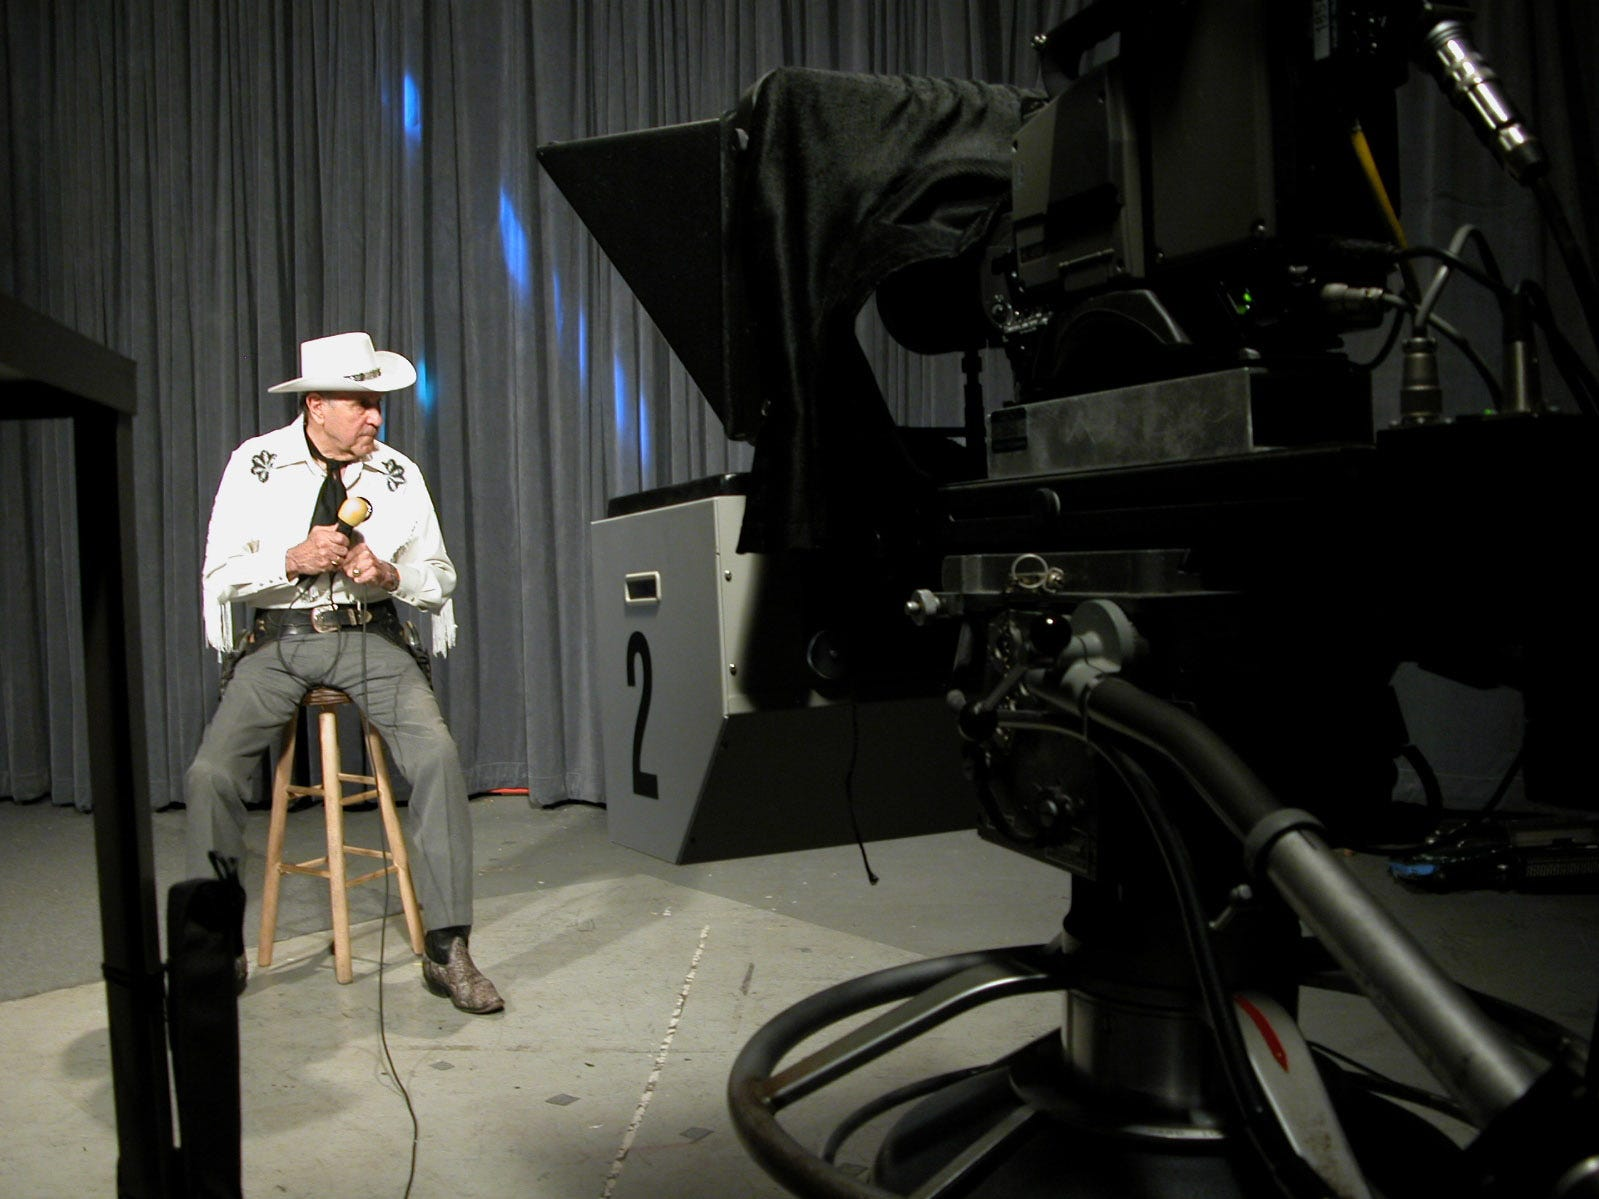 July 14, 2004) Marshal Andy listens to the producer between takes on the set of his PBS show, Riders of the Silver Screen. Andy has been hosting the program, on several stations, for 21 years and has broadcast over 1,200 shows. It is now filmed in the East Tennessee Public Television studios in East Knoxville.